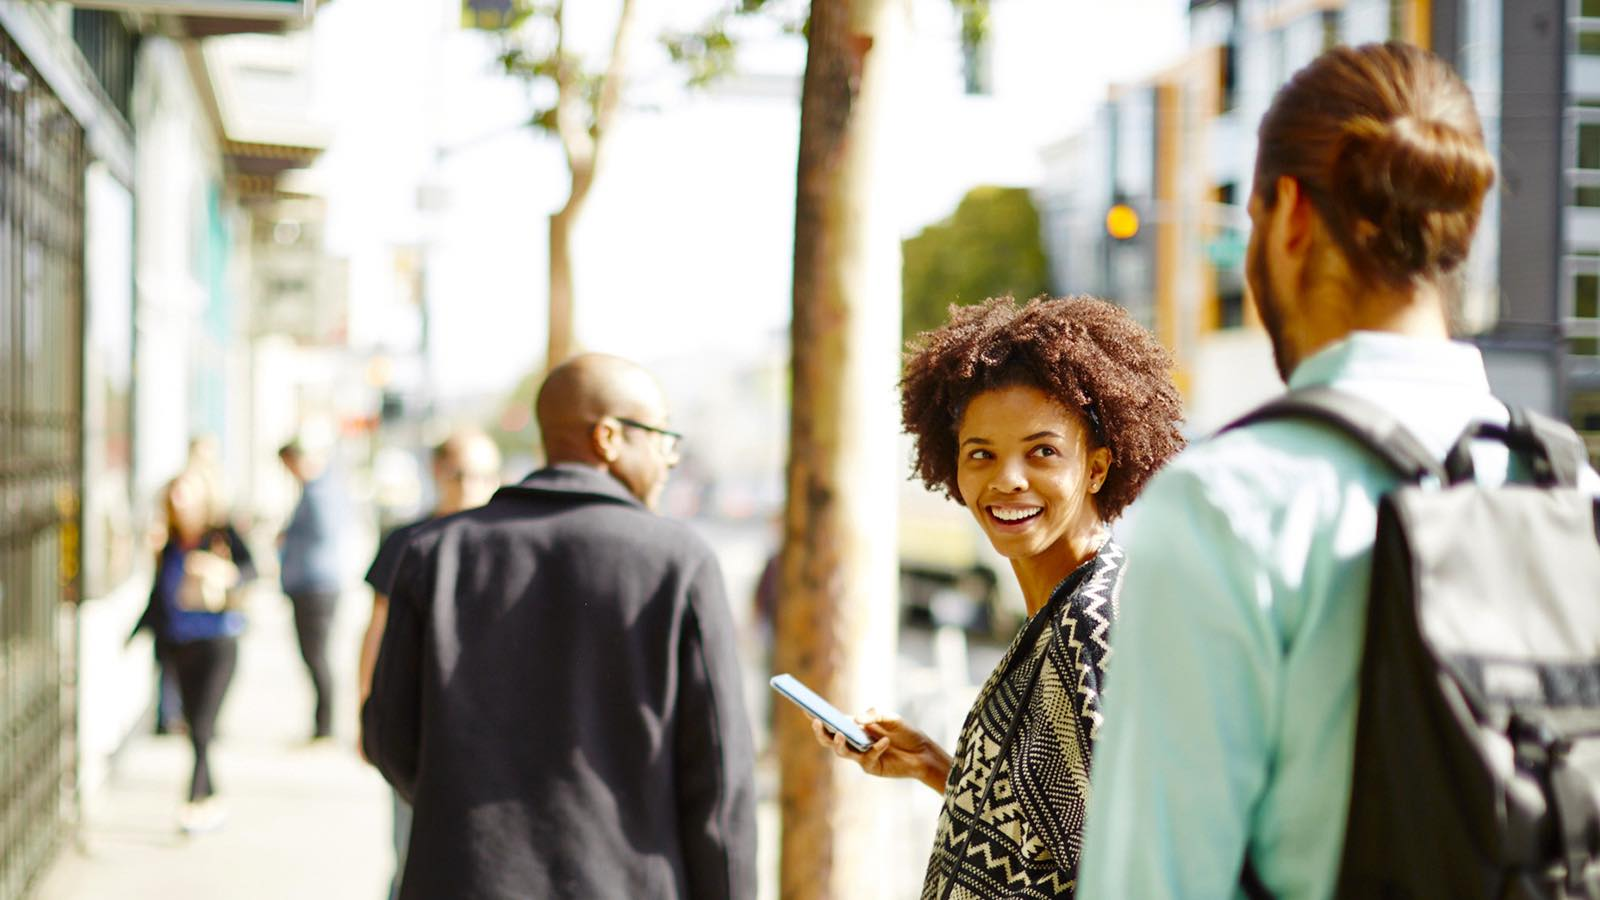 Woman holding a mobile phone, smiling at a person behind her.